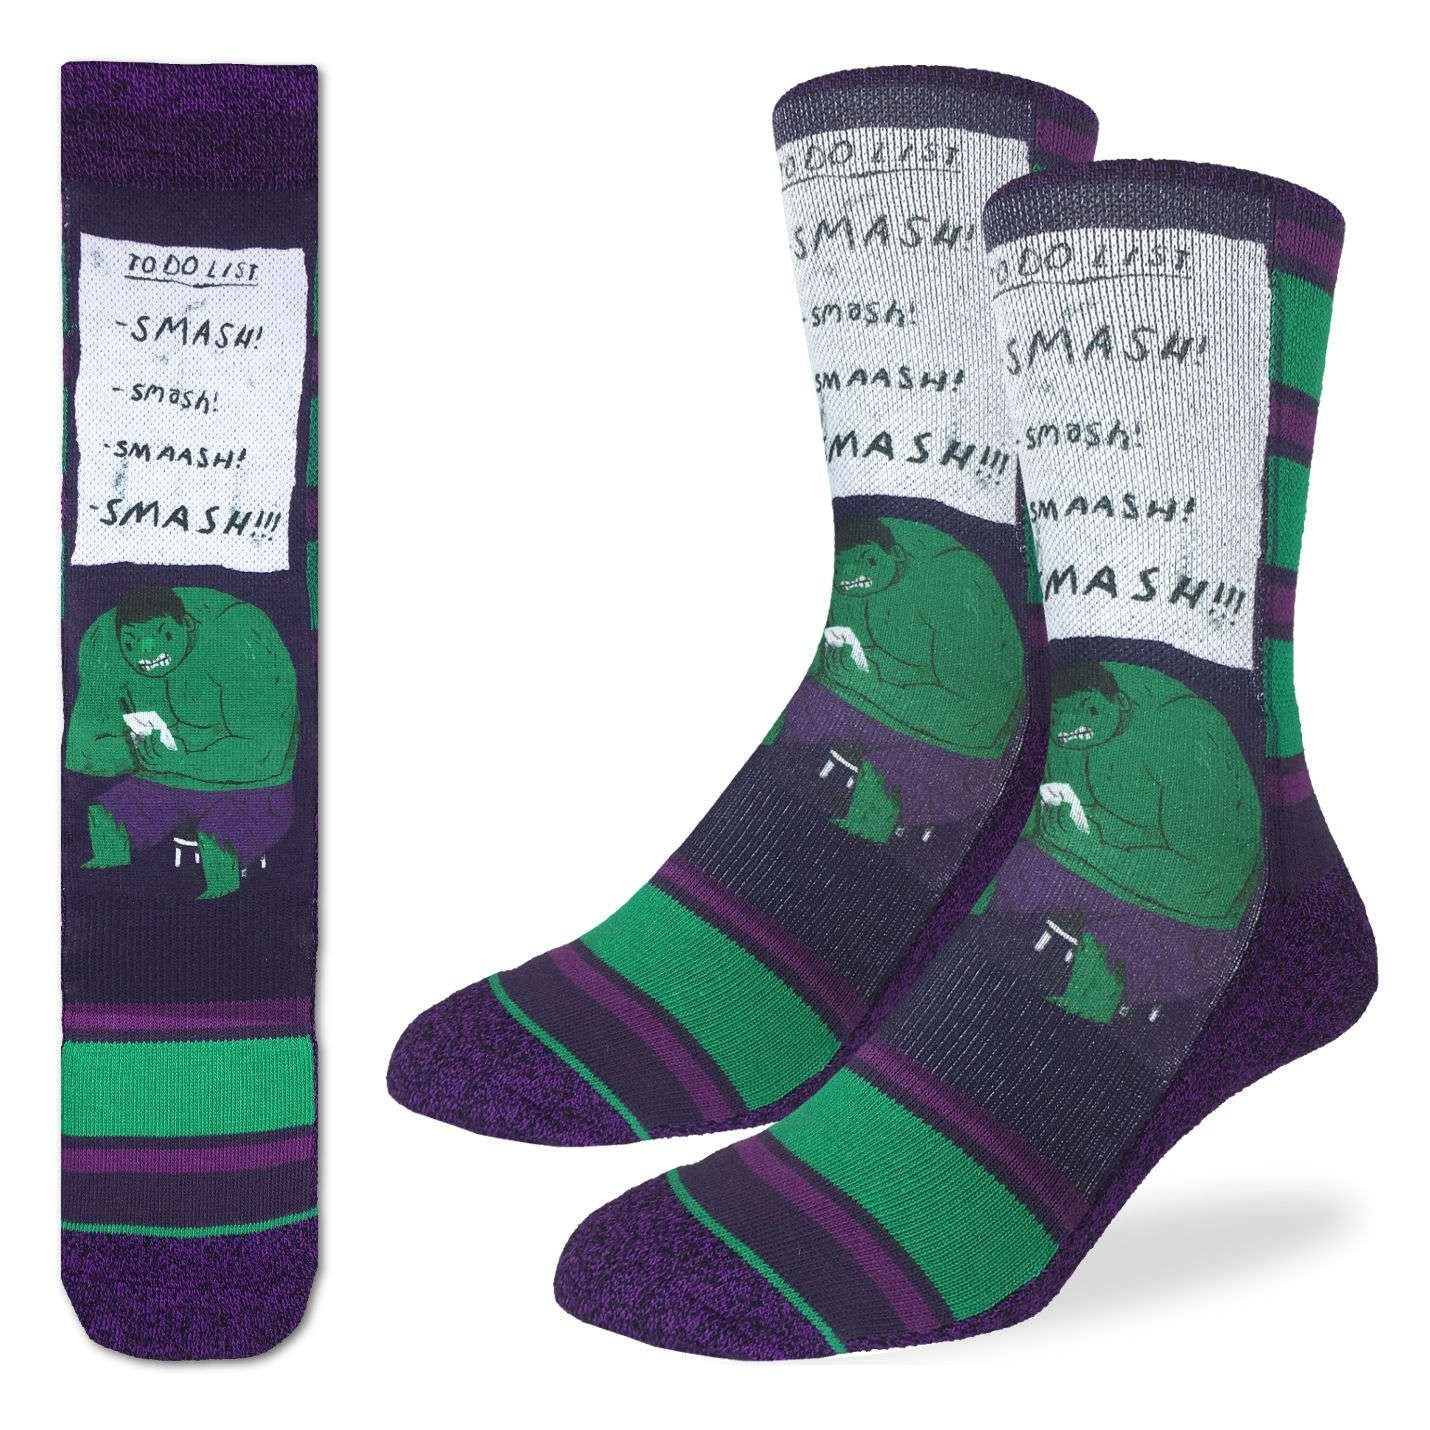 Men's Smash To Do List Socks